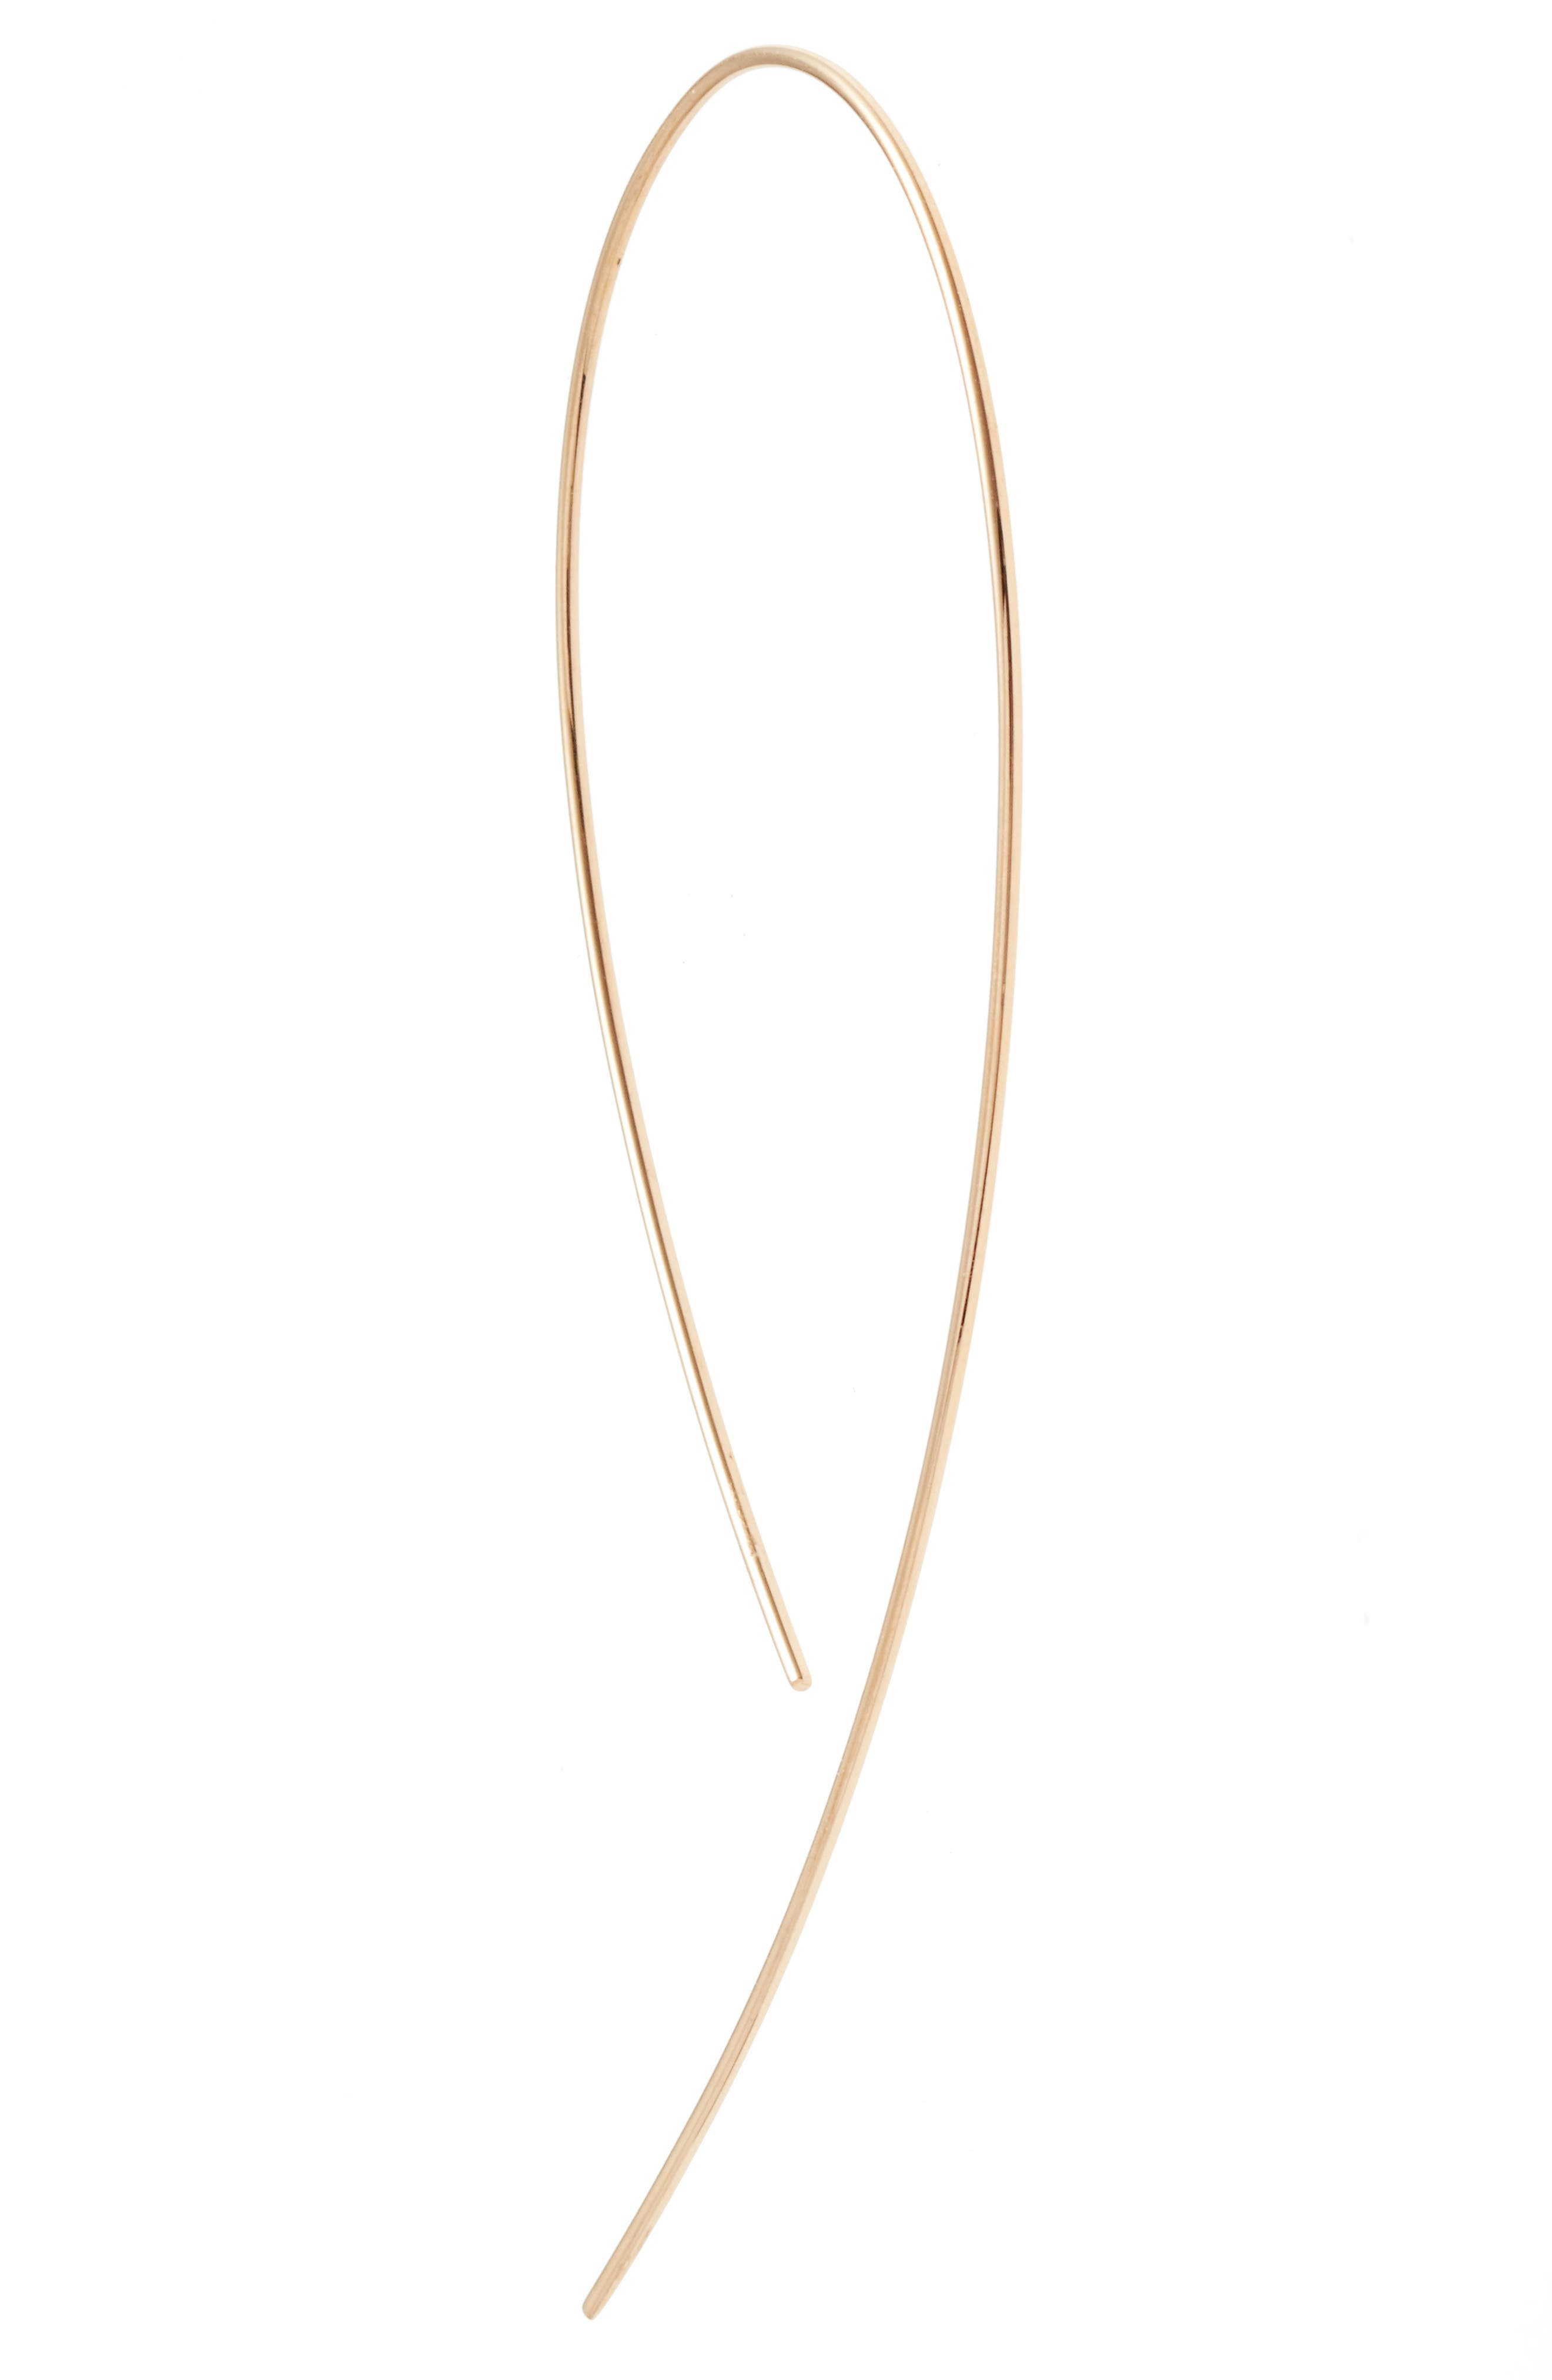 LANA JEWELRY, 'Hooked on Hoop' Earrings, Alternate thumbnail 4, color, YELLOW GOLD